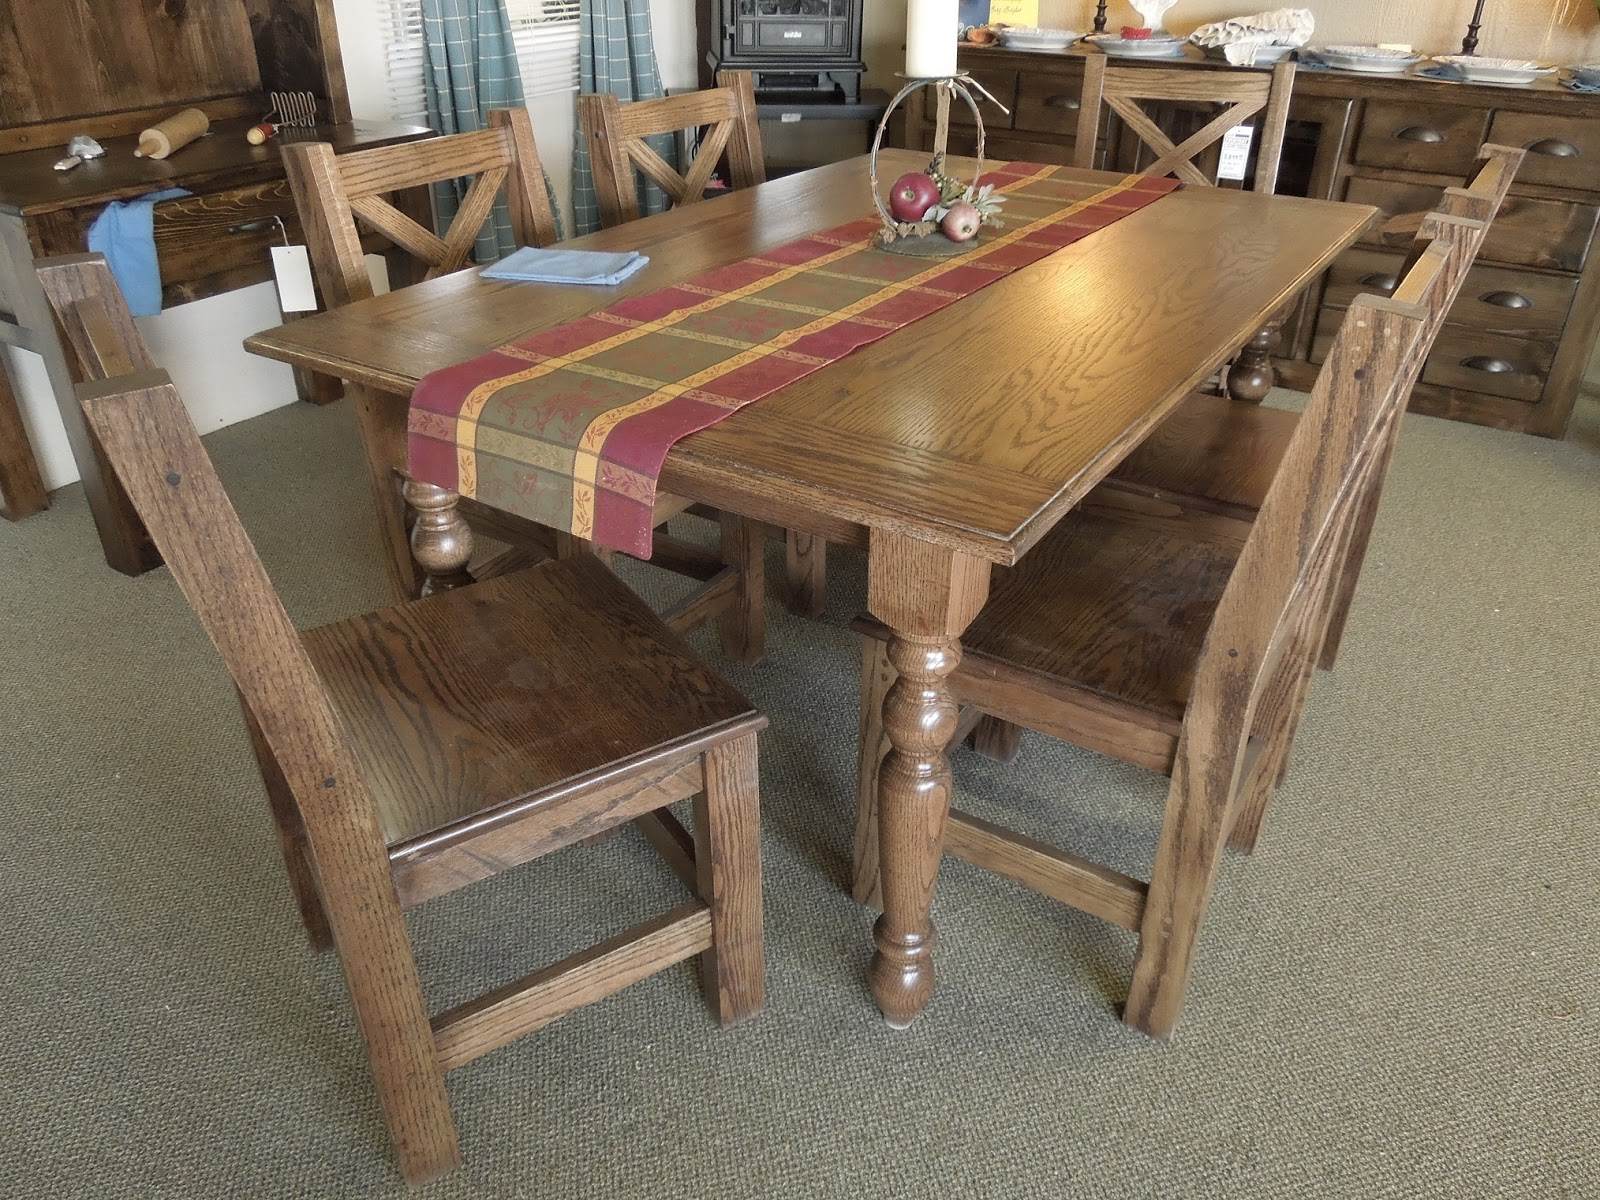 Check out These Oak Farmhouse Dining Table for your house : red oak dining table featuring country table legs osborne wood throughout oak farmhouse dining table from www.artsdomicile.com size 1600 x 1200 jpeg 585kB